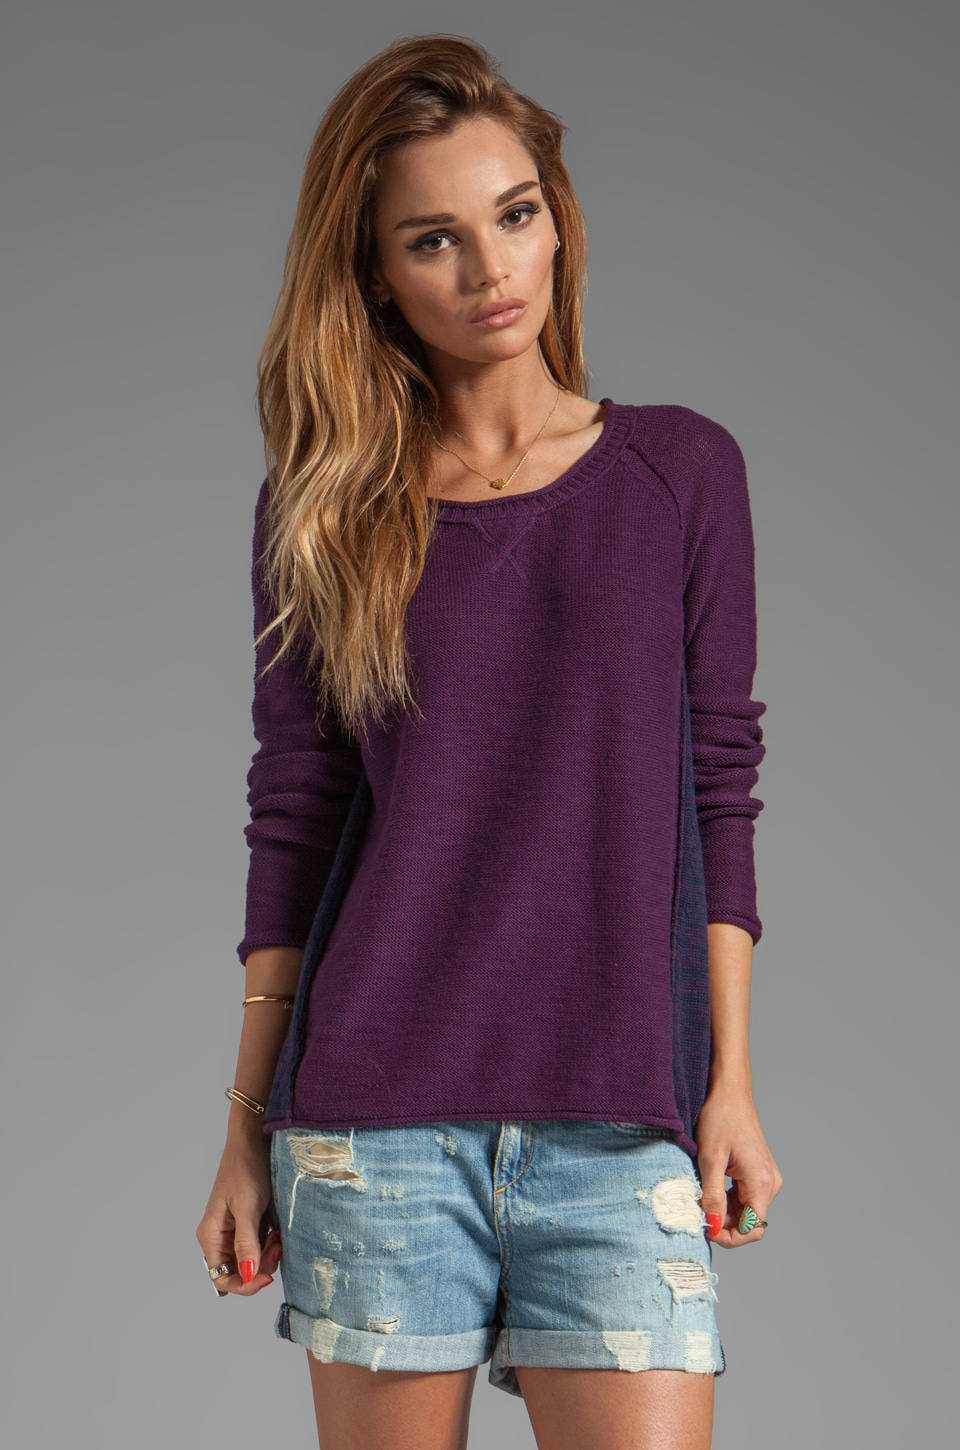 Michael Stars Slub Cotton Long Sleeve Scoop Neck Raglan Pullover in Plum